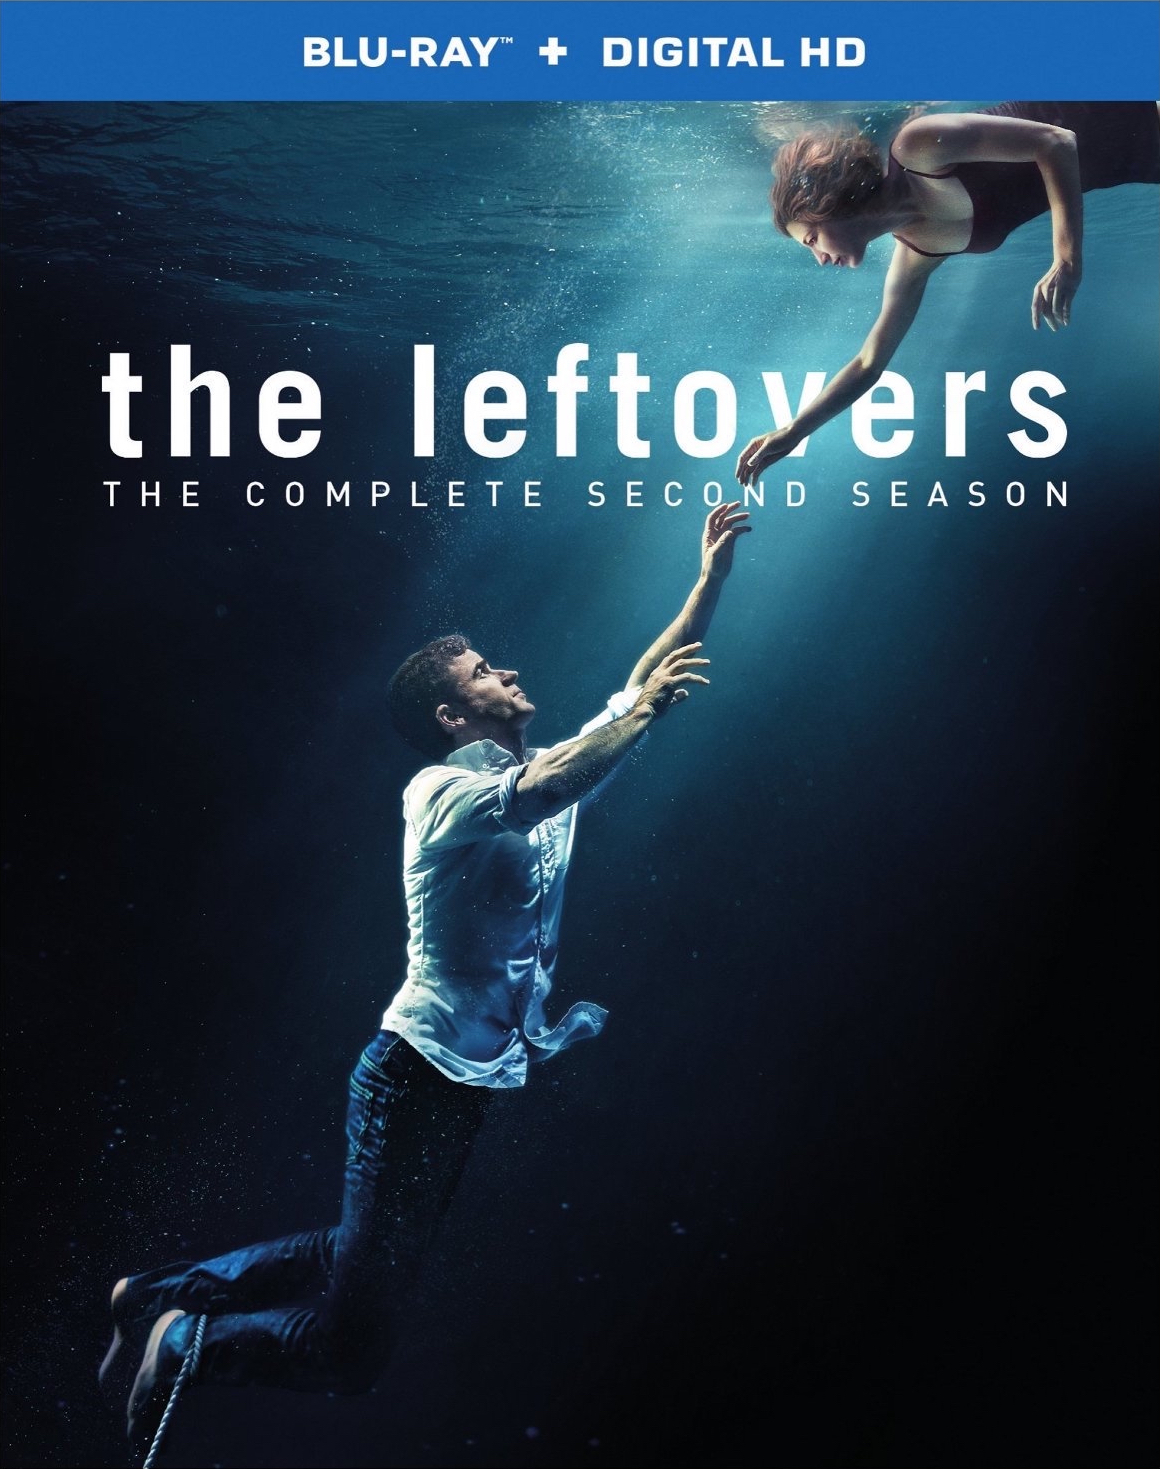 The Leftovers: The Complete Second Season (TV) (2014) Blu-ray